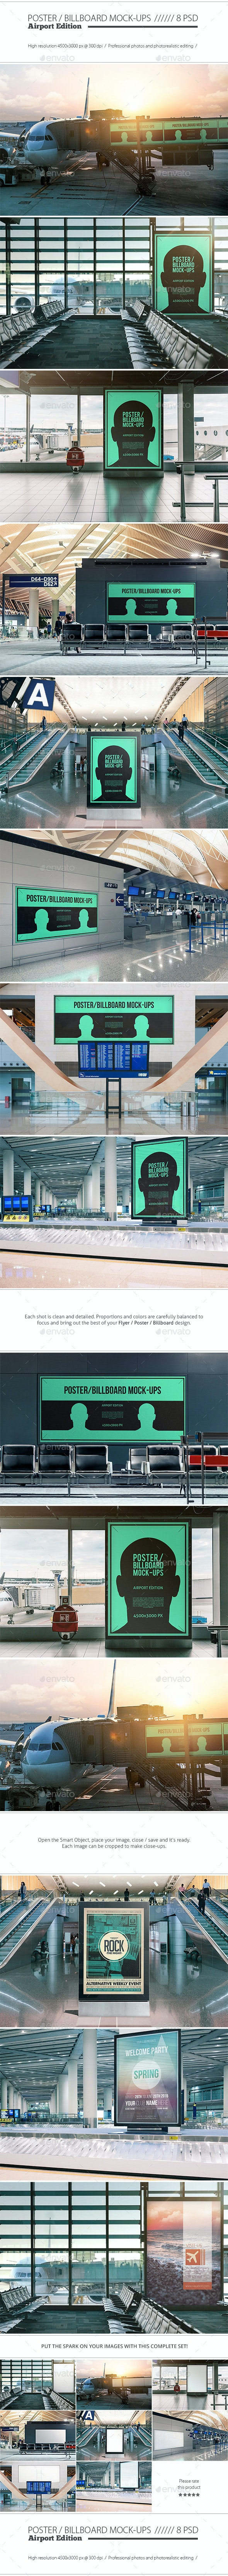 Poster / Billboard Mock-ups - Airport Edition - Posters Print